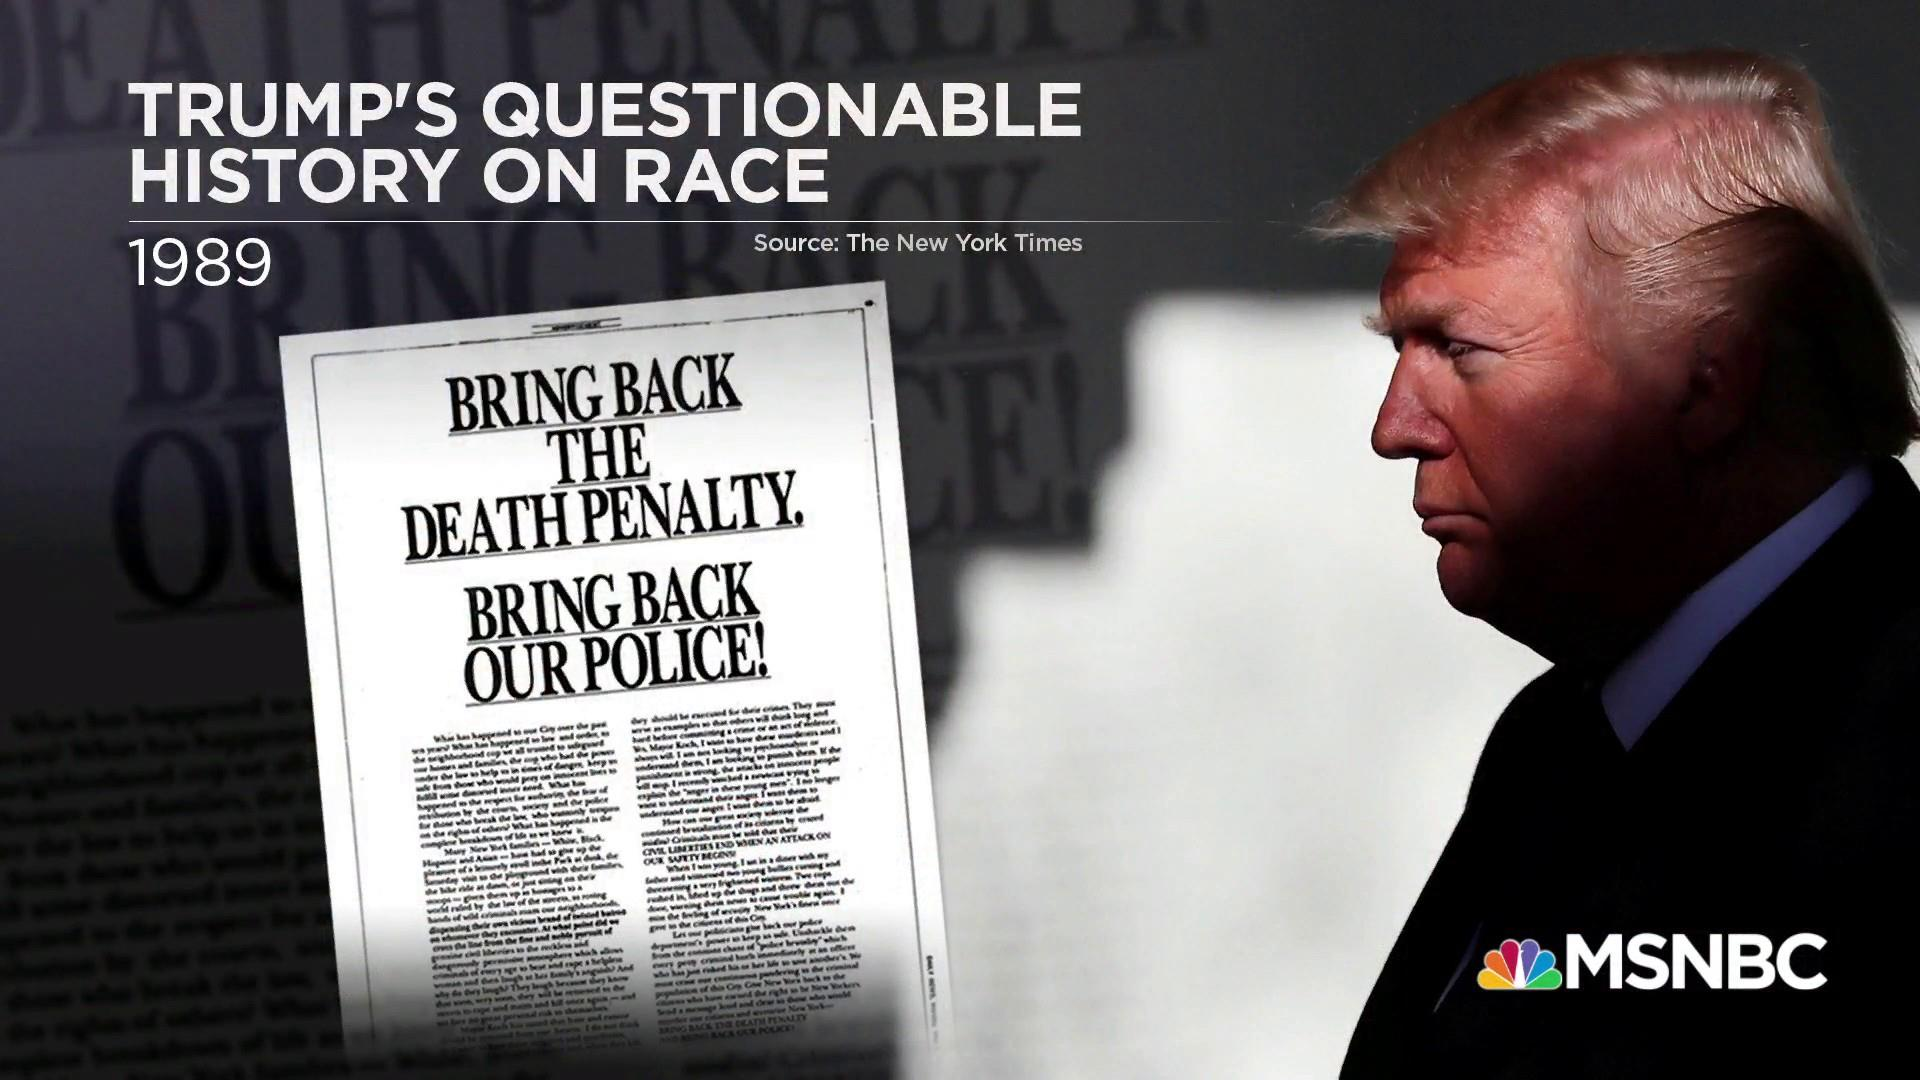 Trump refuses to apologize over Central Park 5 comments